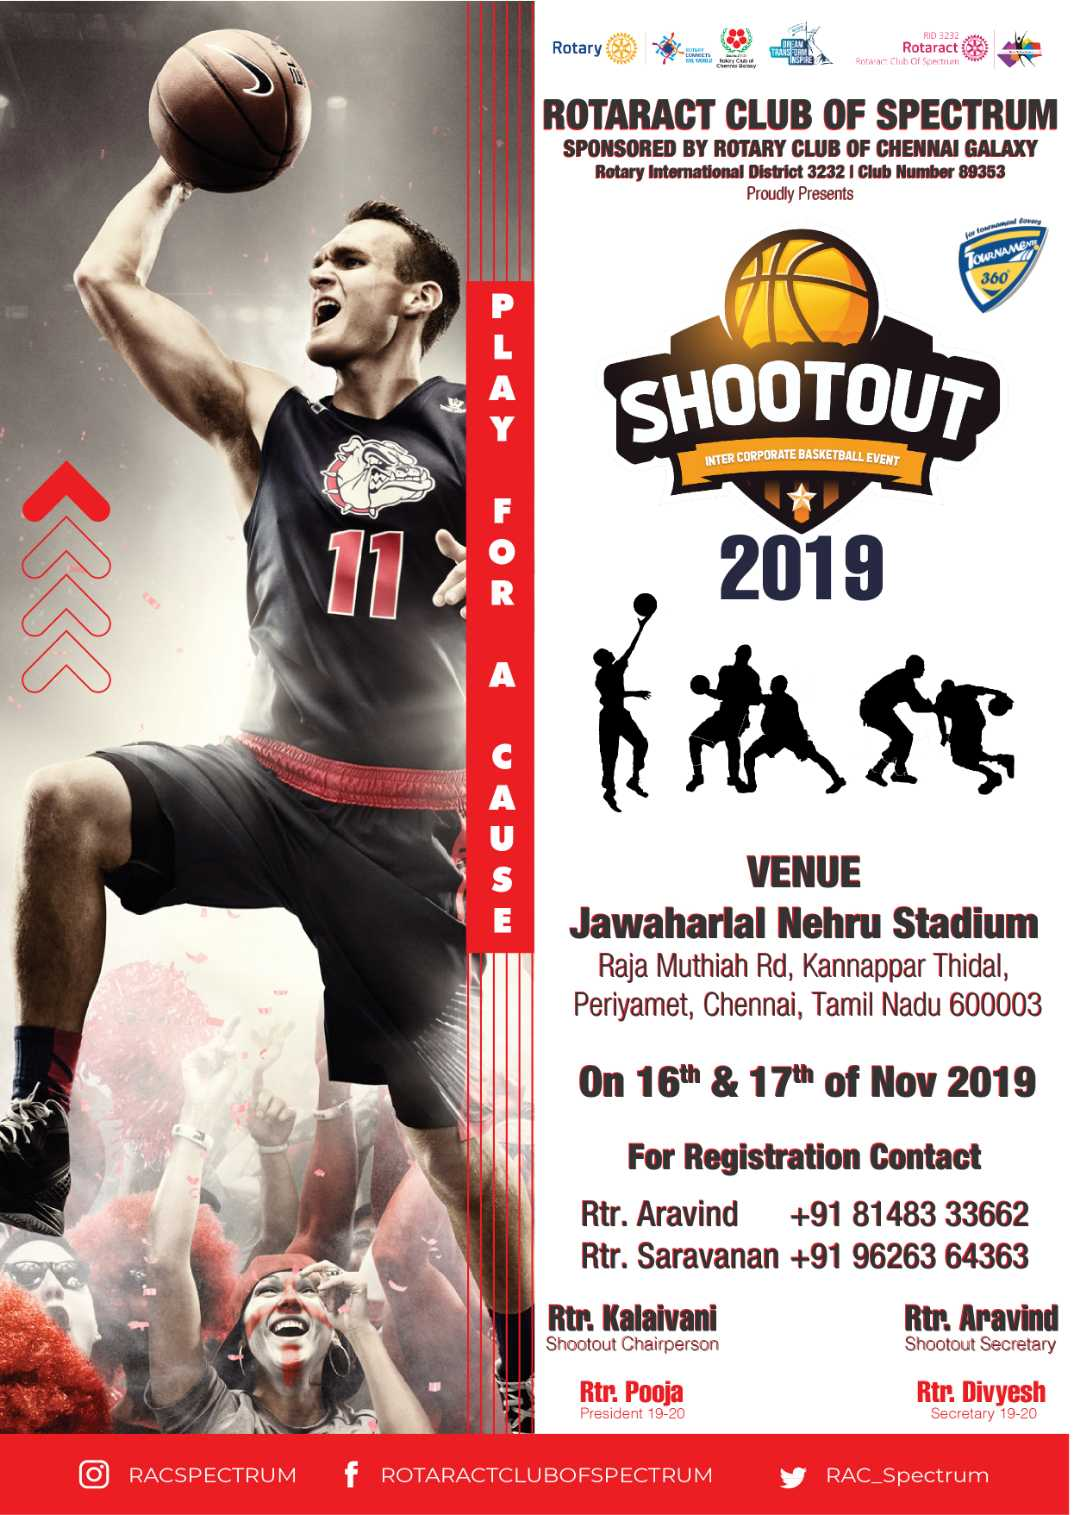 Shootout Inter Corporate Basketball Tournament